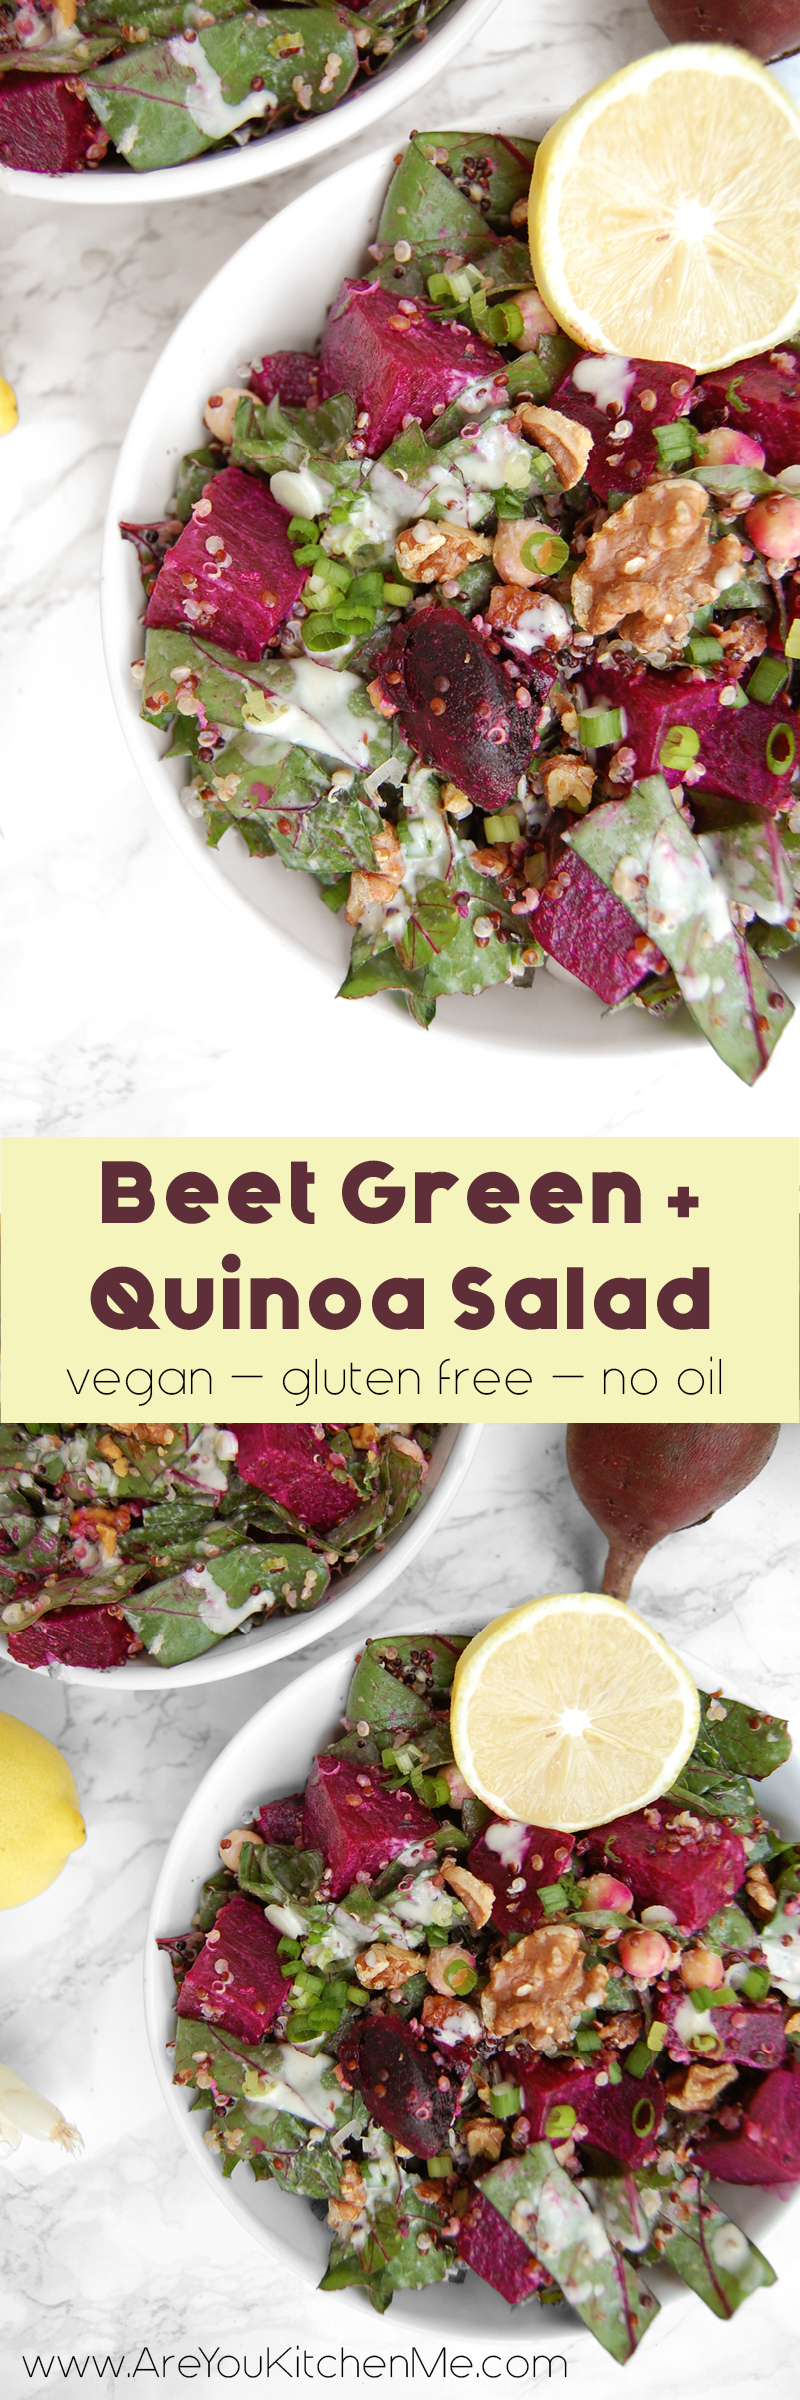 Beet Green & Quinoa Salad | AreYouKitchenMe.com